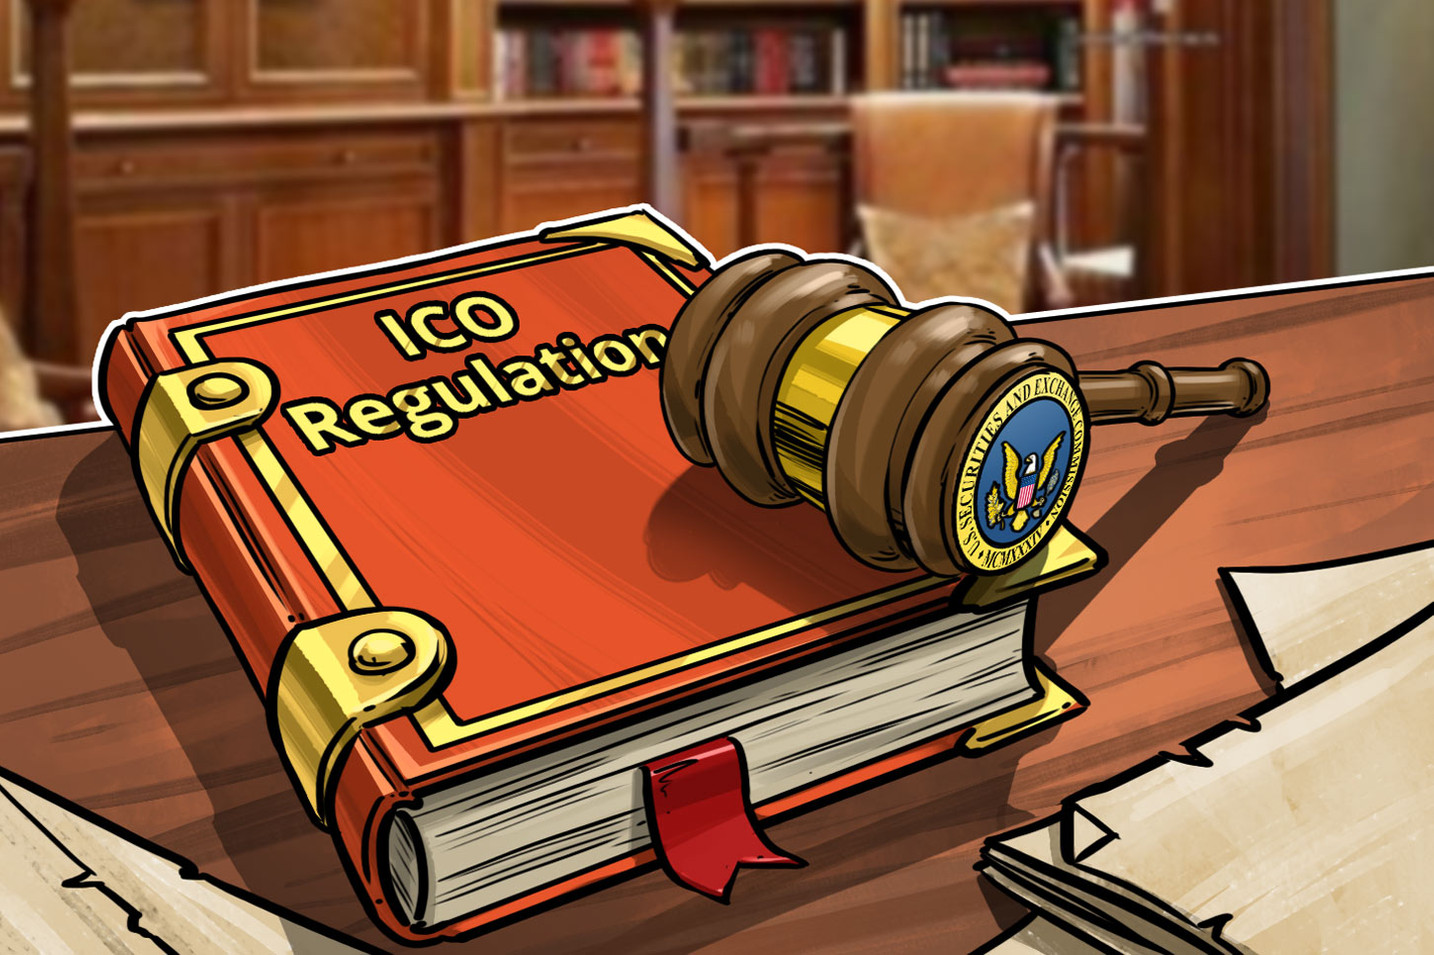 Thai SEC Holds Focus Group to Clarify New Crypto, ICO Regulations